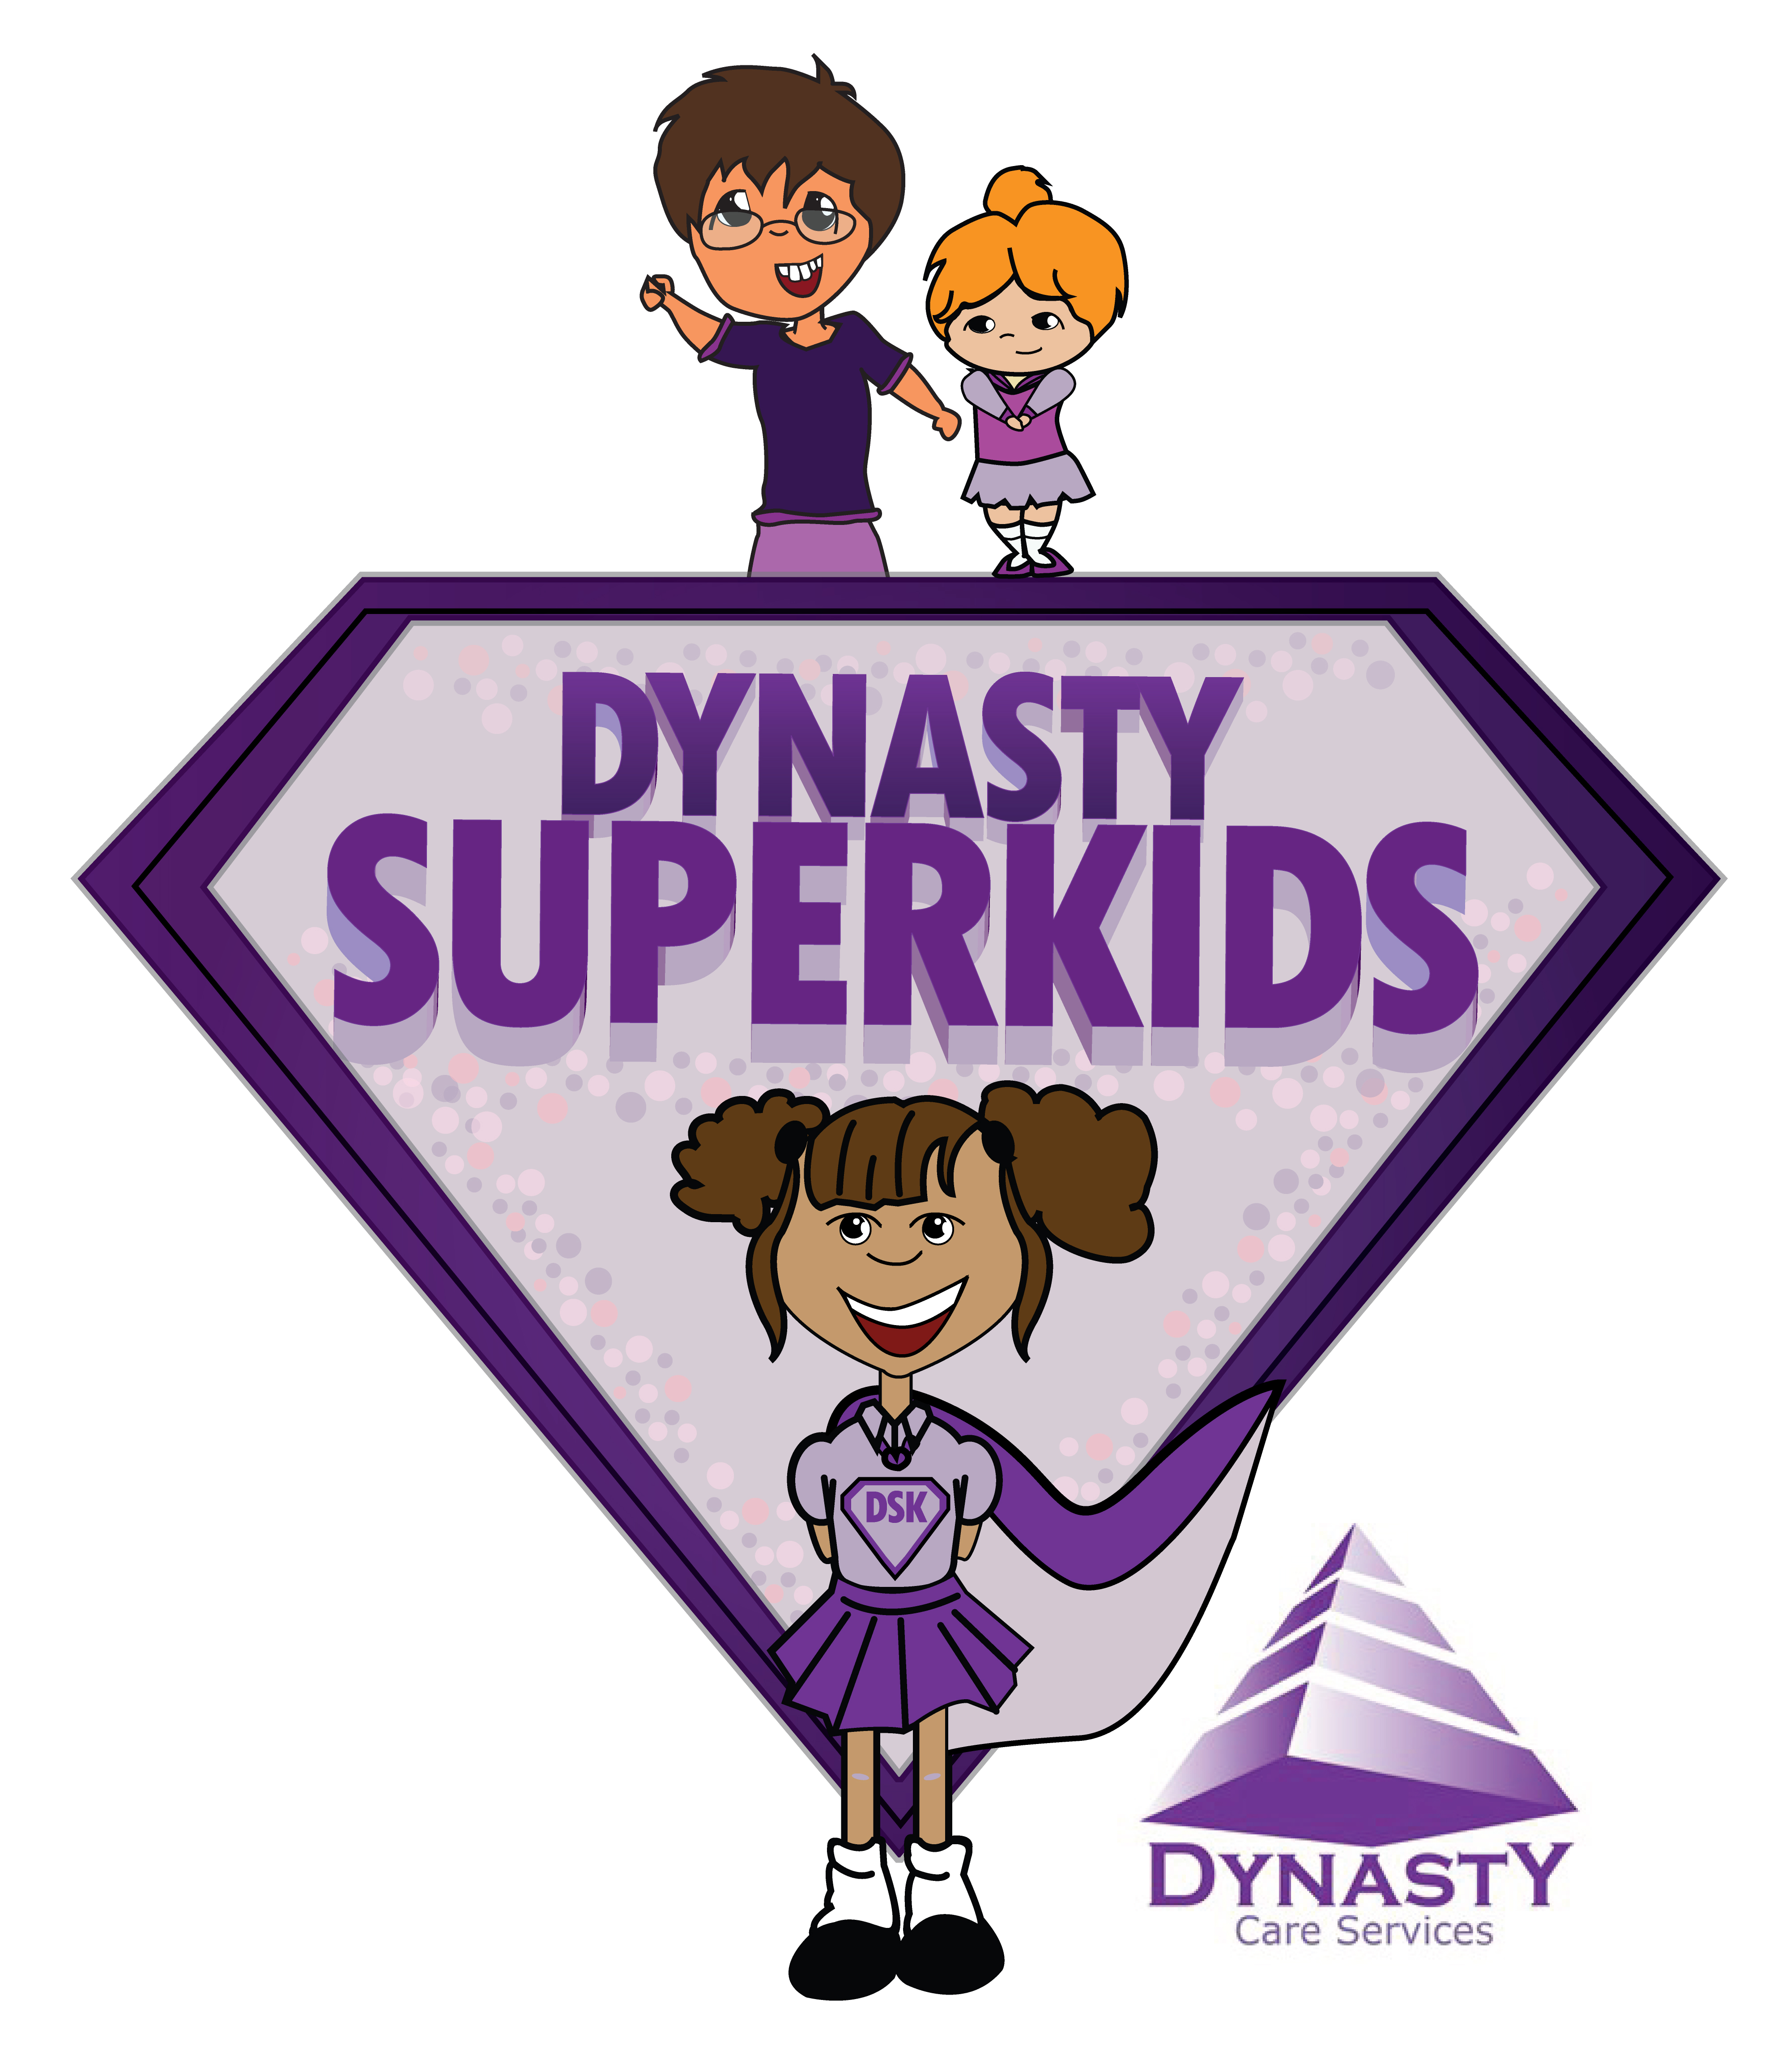 Dynasty Super Kids